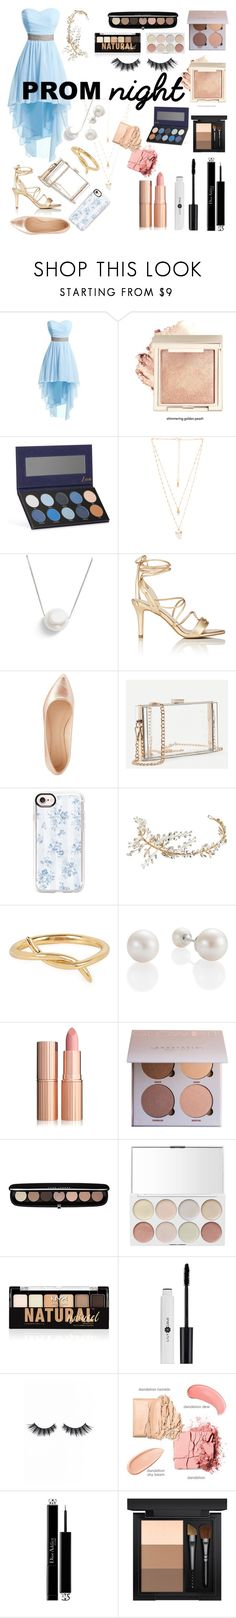 """My girlfriend"" by torijule ❤ liked on Polyvore featuring Luxie, Natalie B, Chan Luu, Barneys New York, Charlotte Russe, Casetify, Nina, KATKIM, Marc Jacobs and NYX"